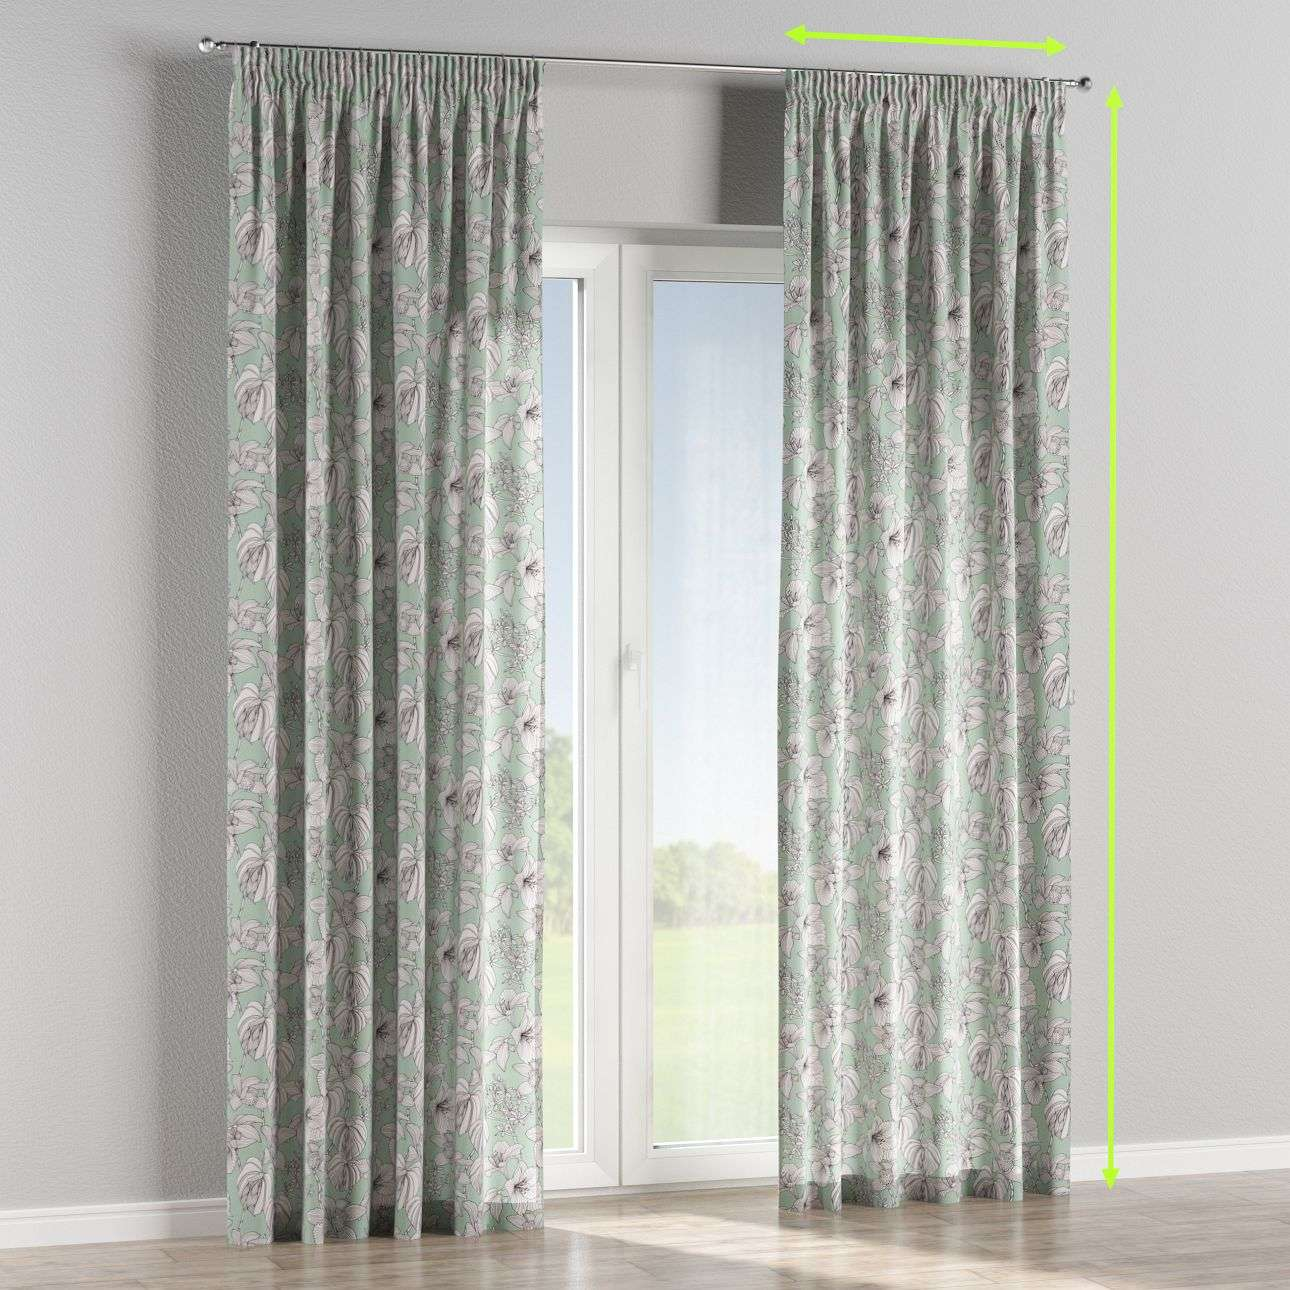 Pencil pleat curtain in collection SALE, fabric: 137-76